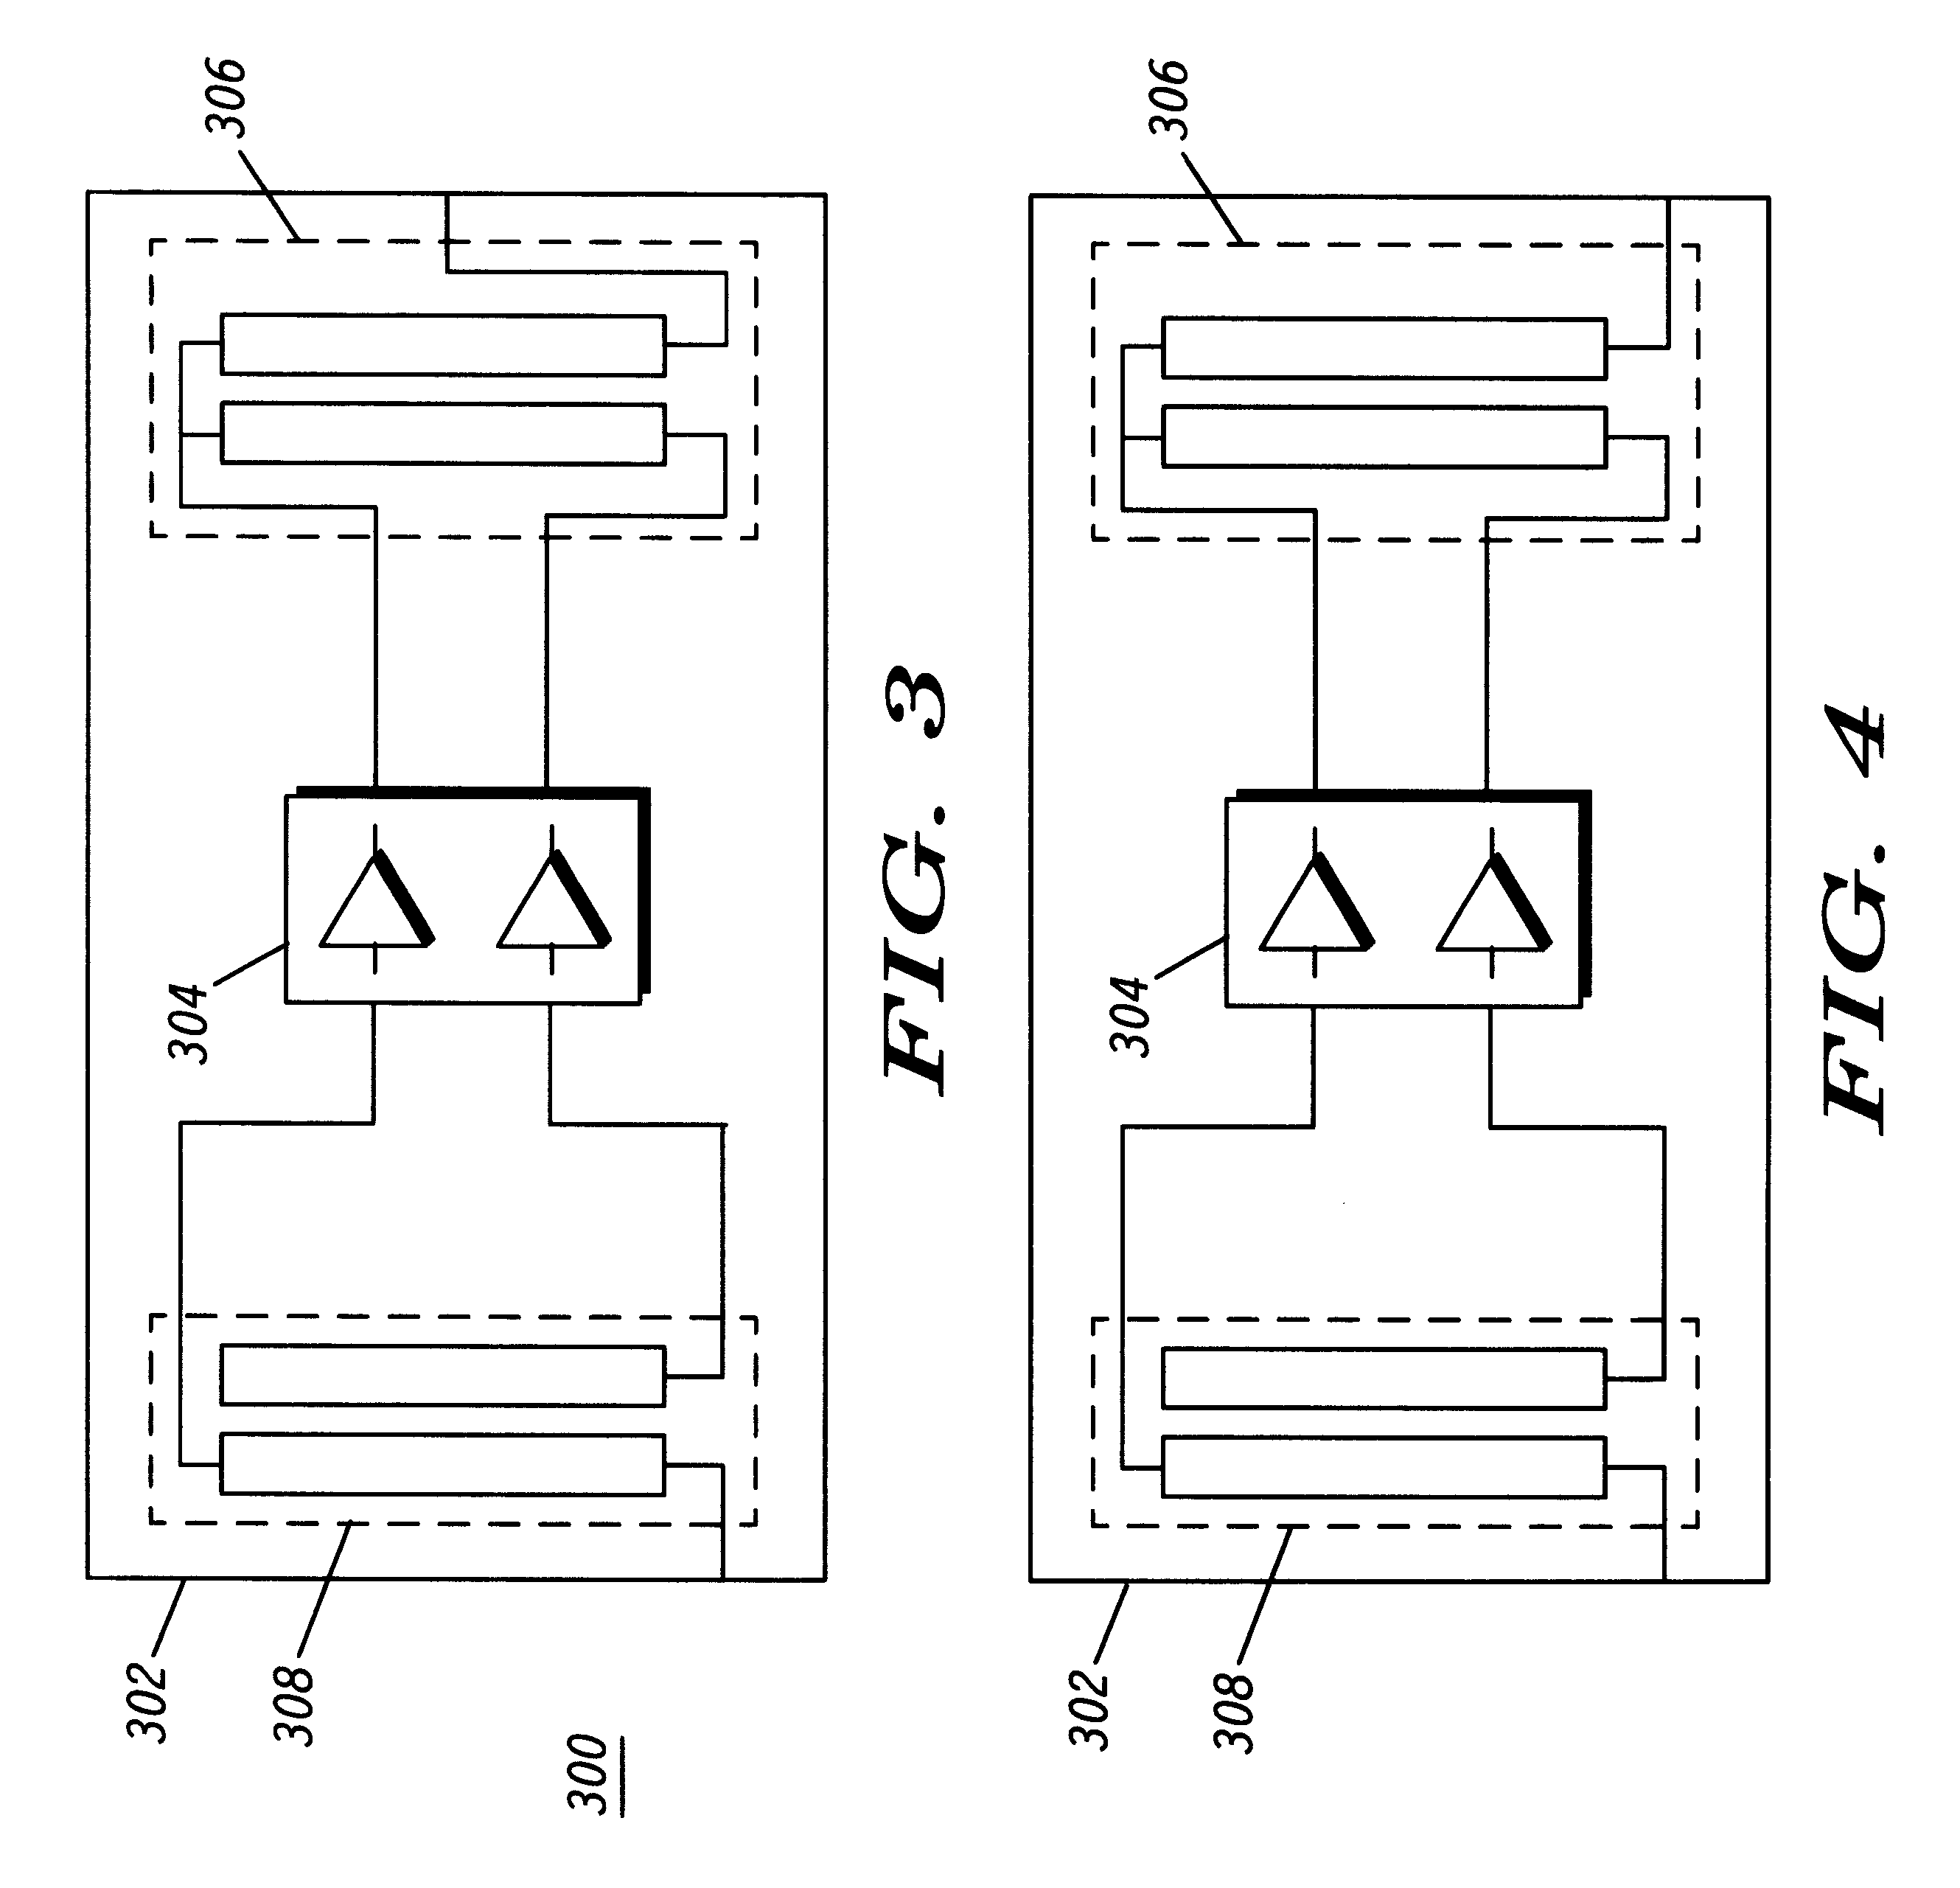 Patent Us6262629 High Efficiency Power Amplifier Having Reduced Load Summing Drawing